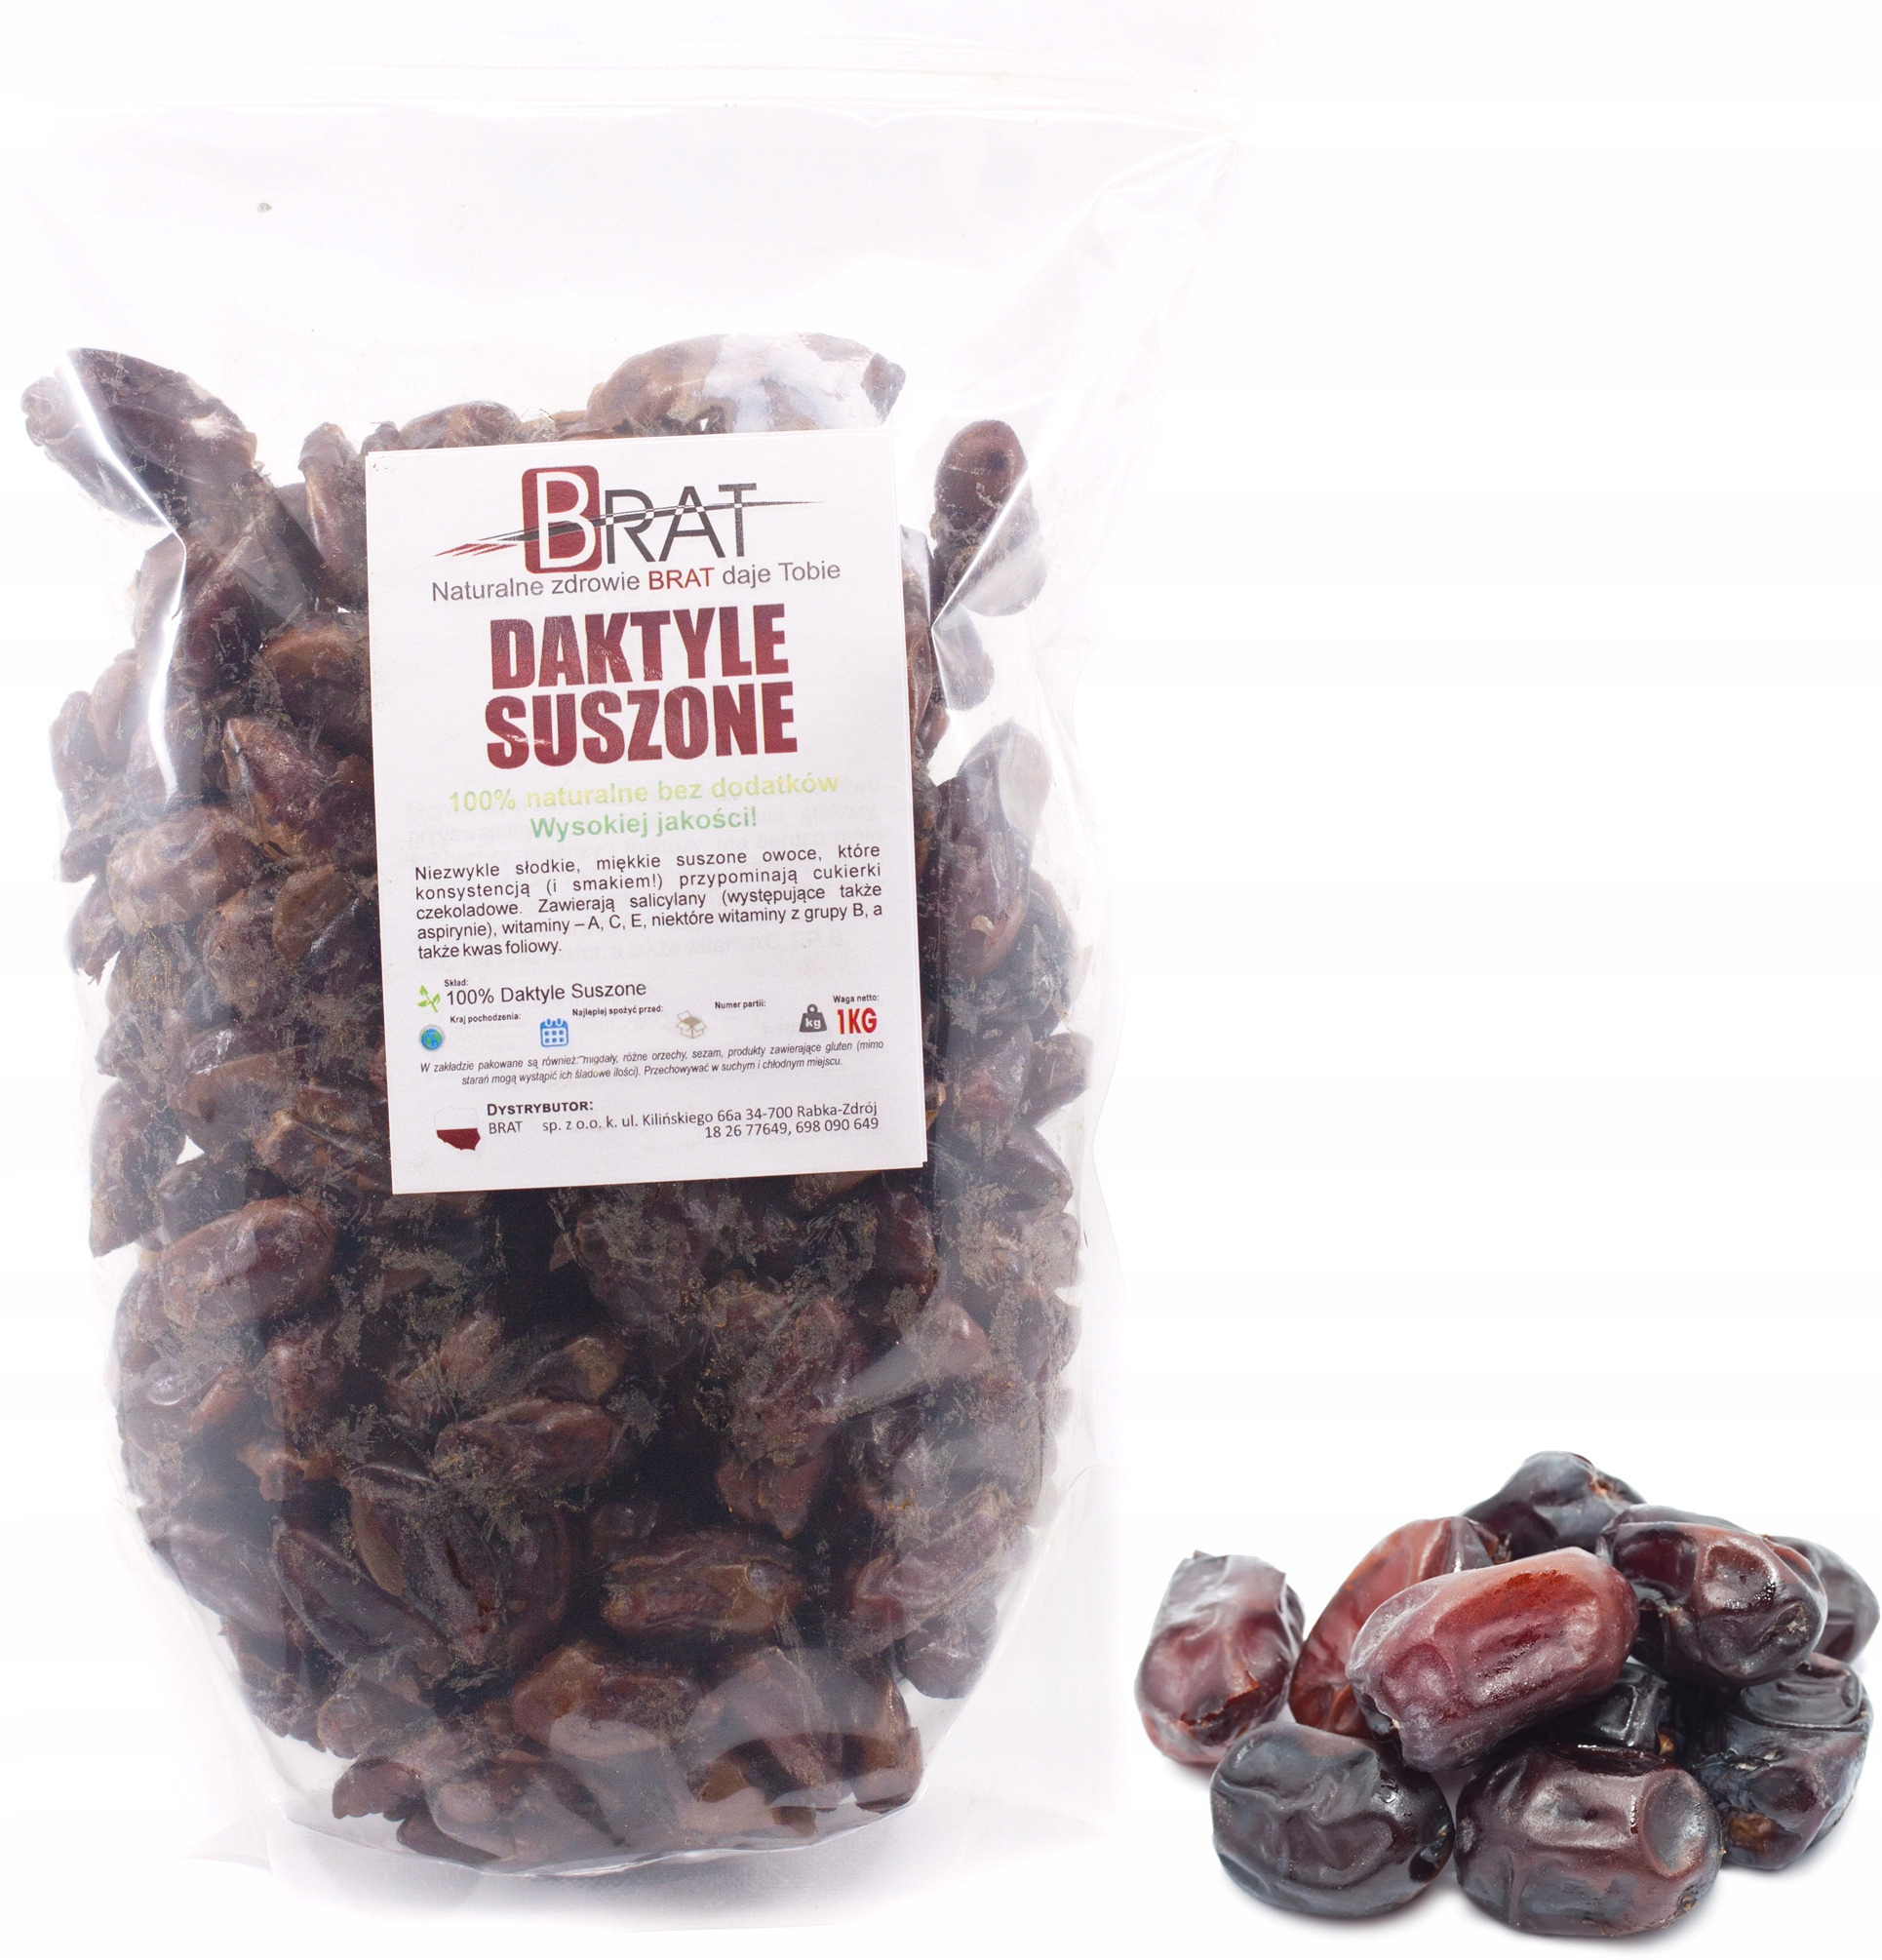 Item DRIED dates pitted 1kg naturally SWEET